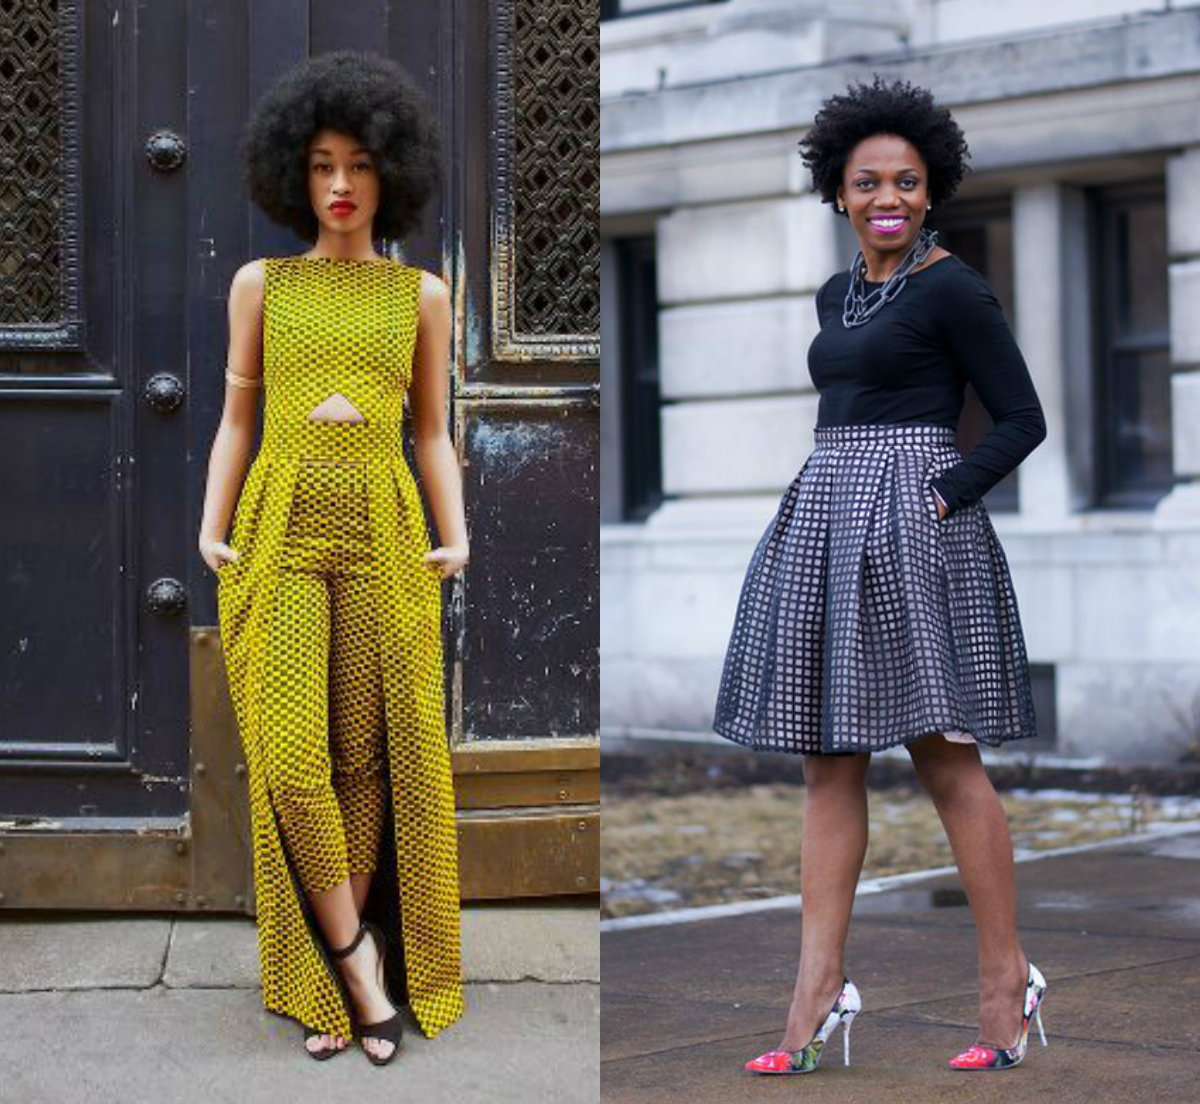 Black Female Fashion: Black Women Street Style & Natural Afro Hairstyles